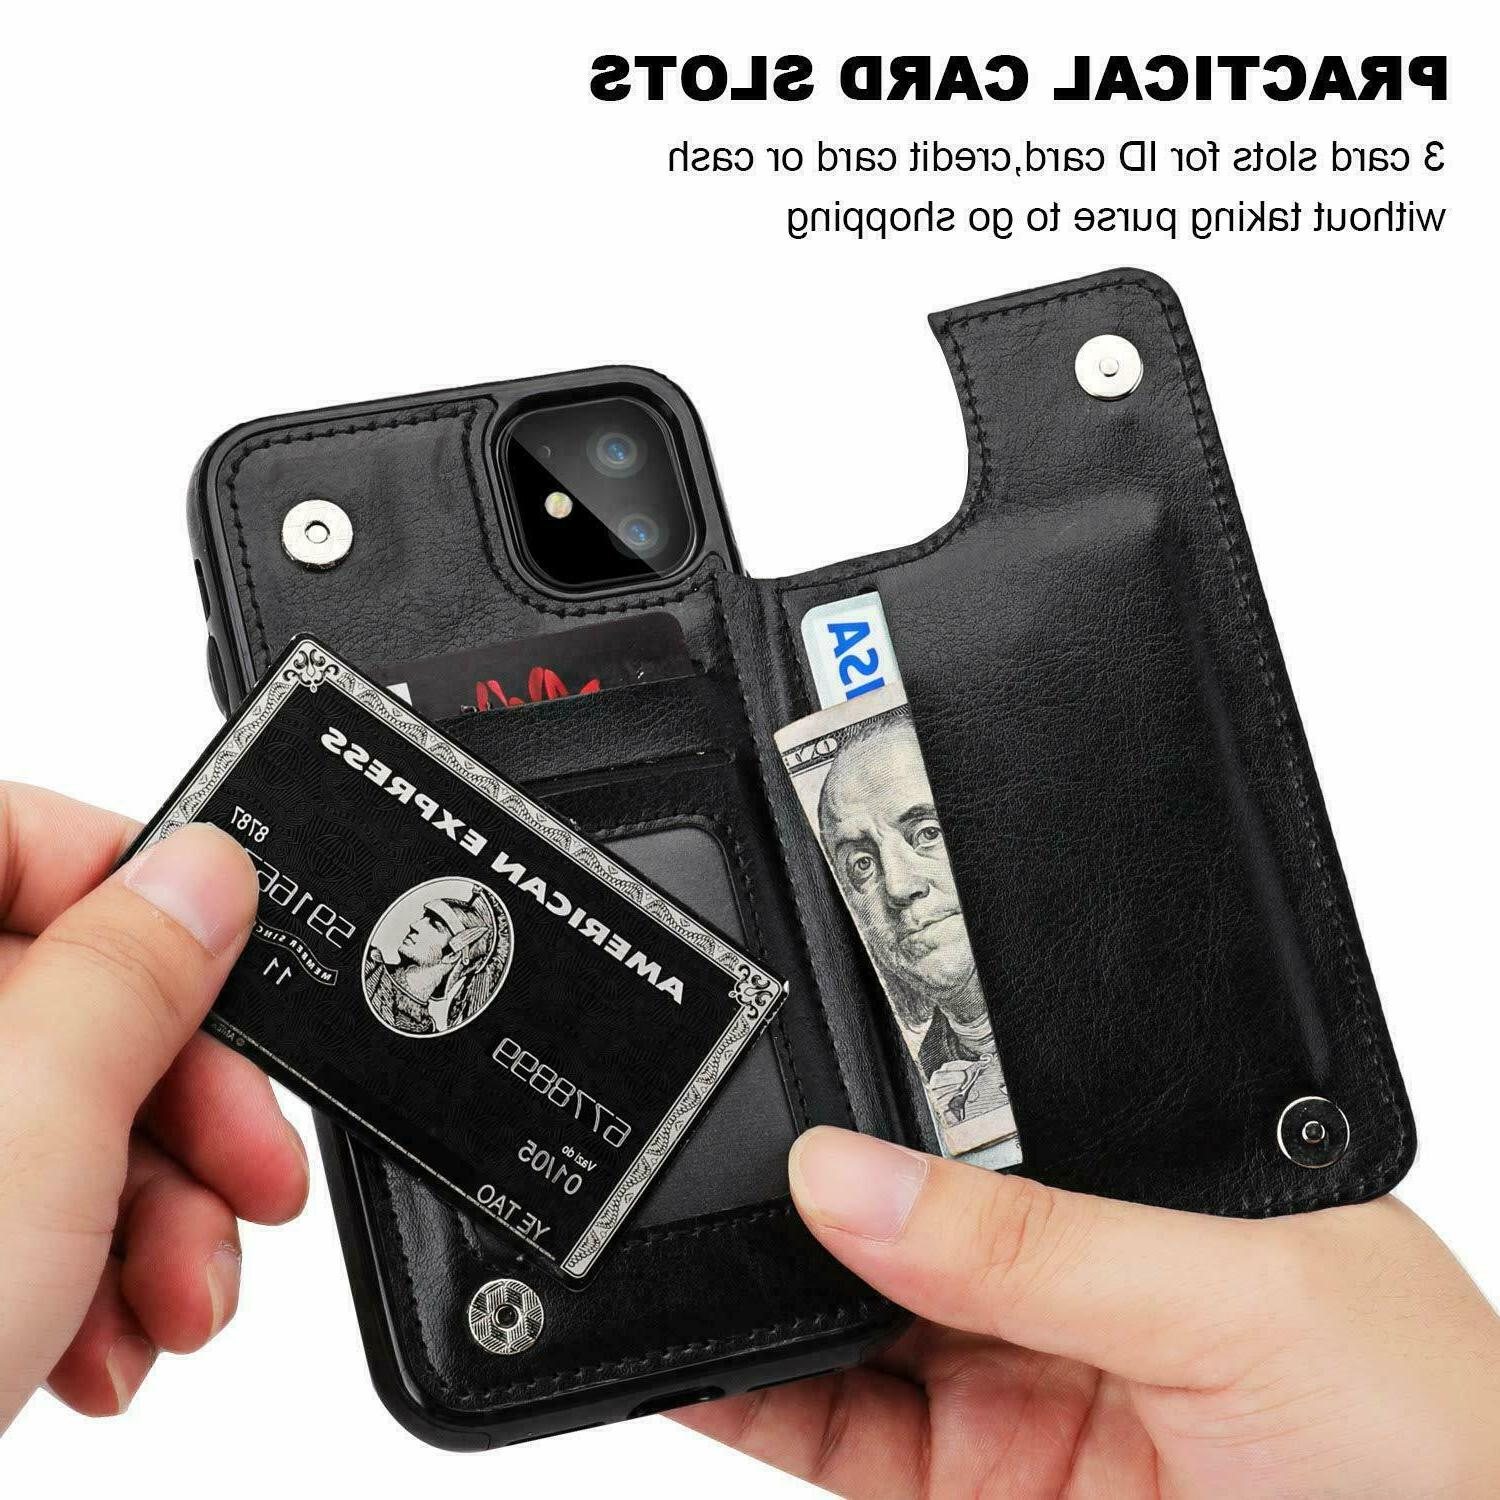 New iPhone Pro / Case Cover Wallet Kickstand for